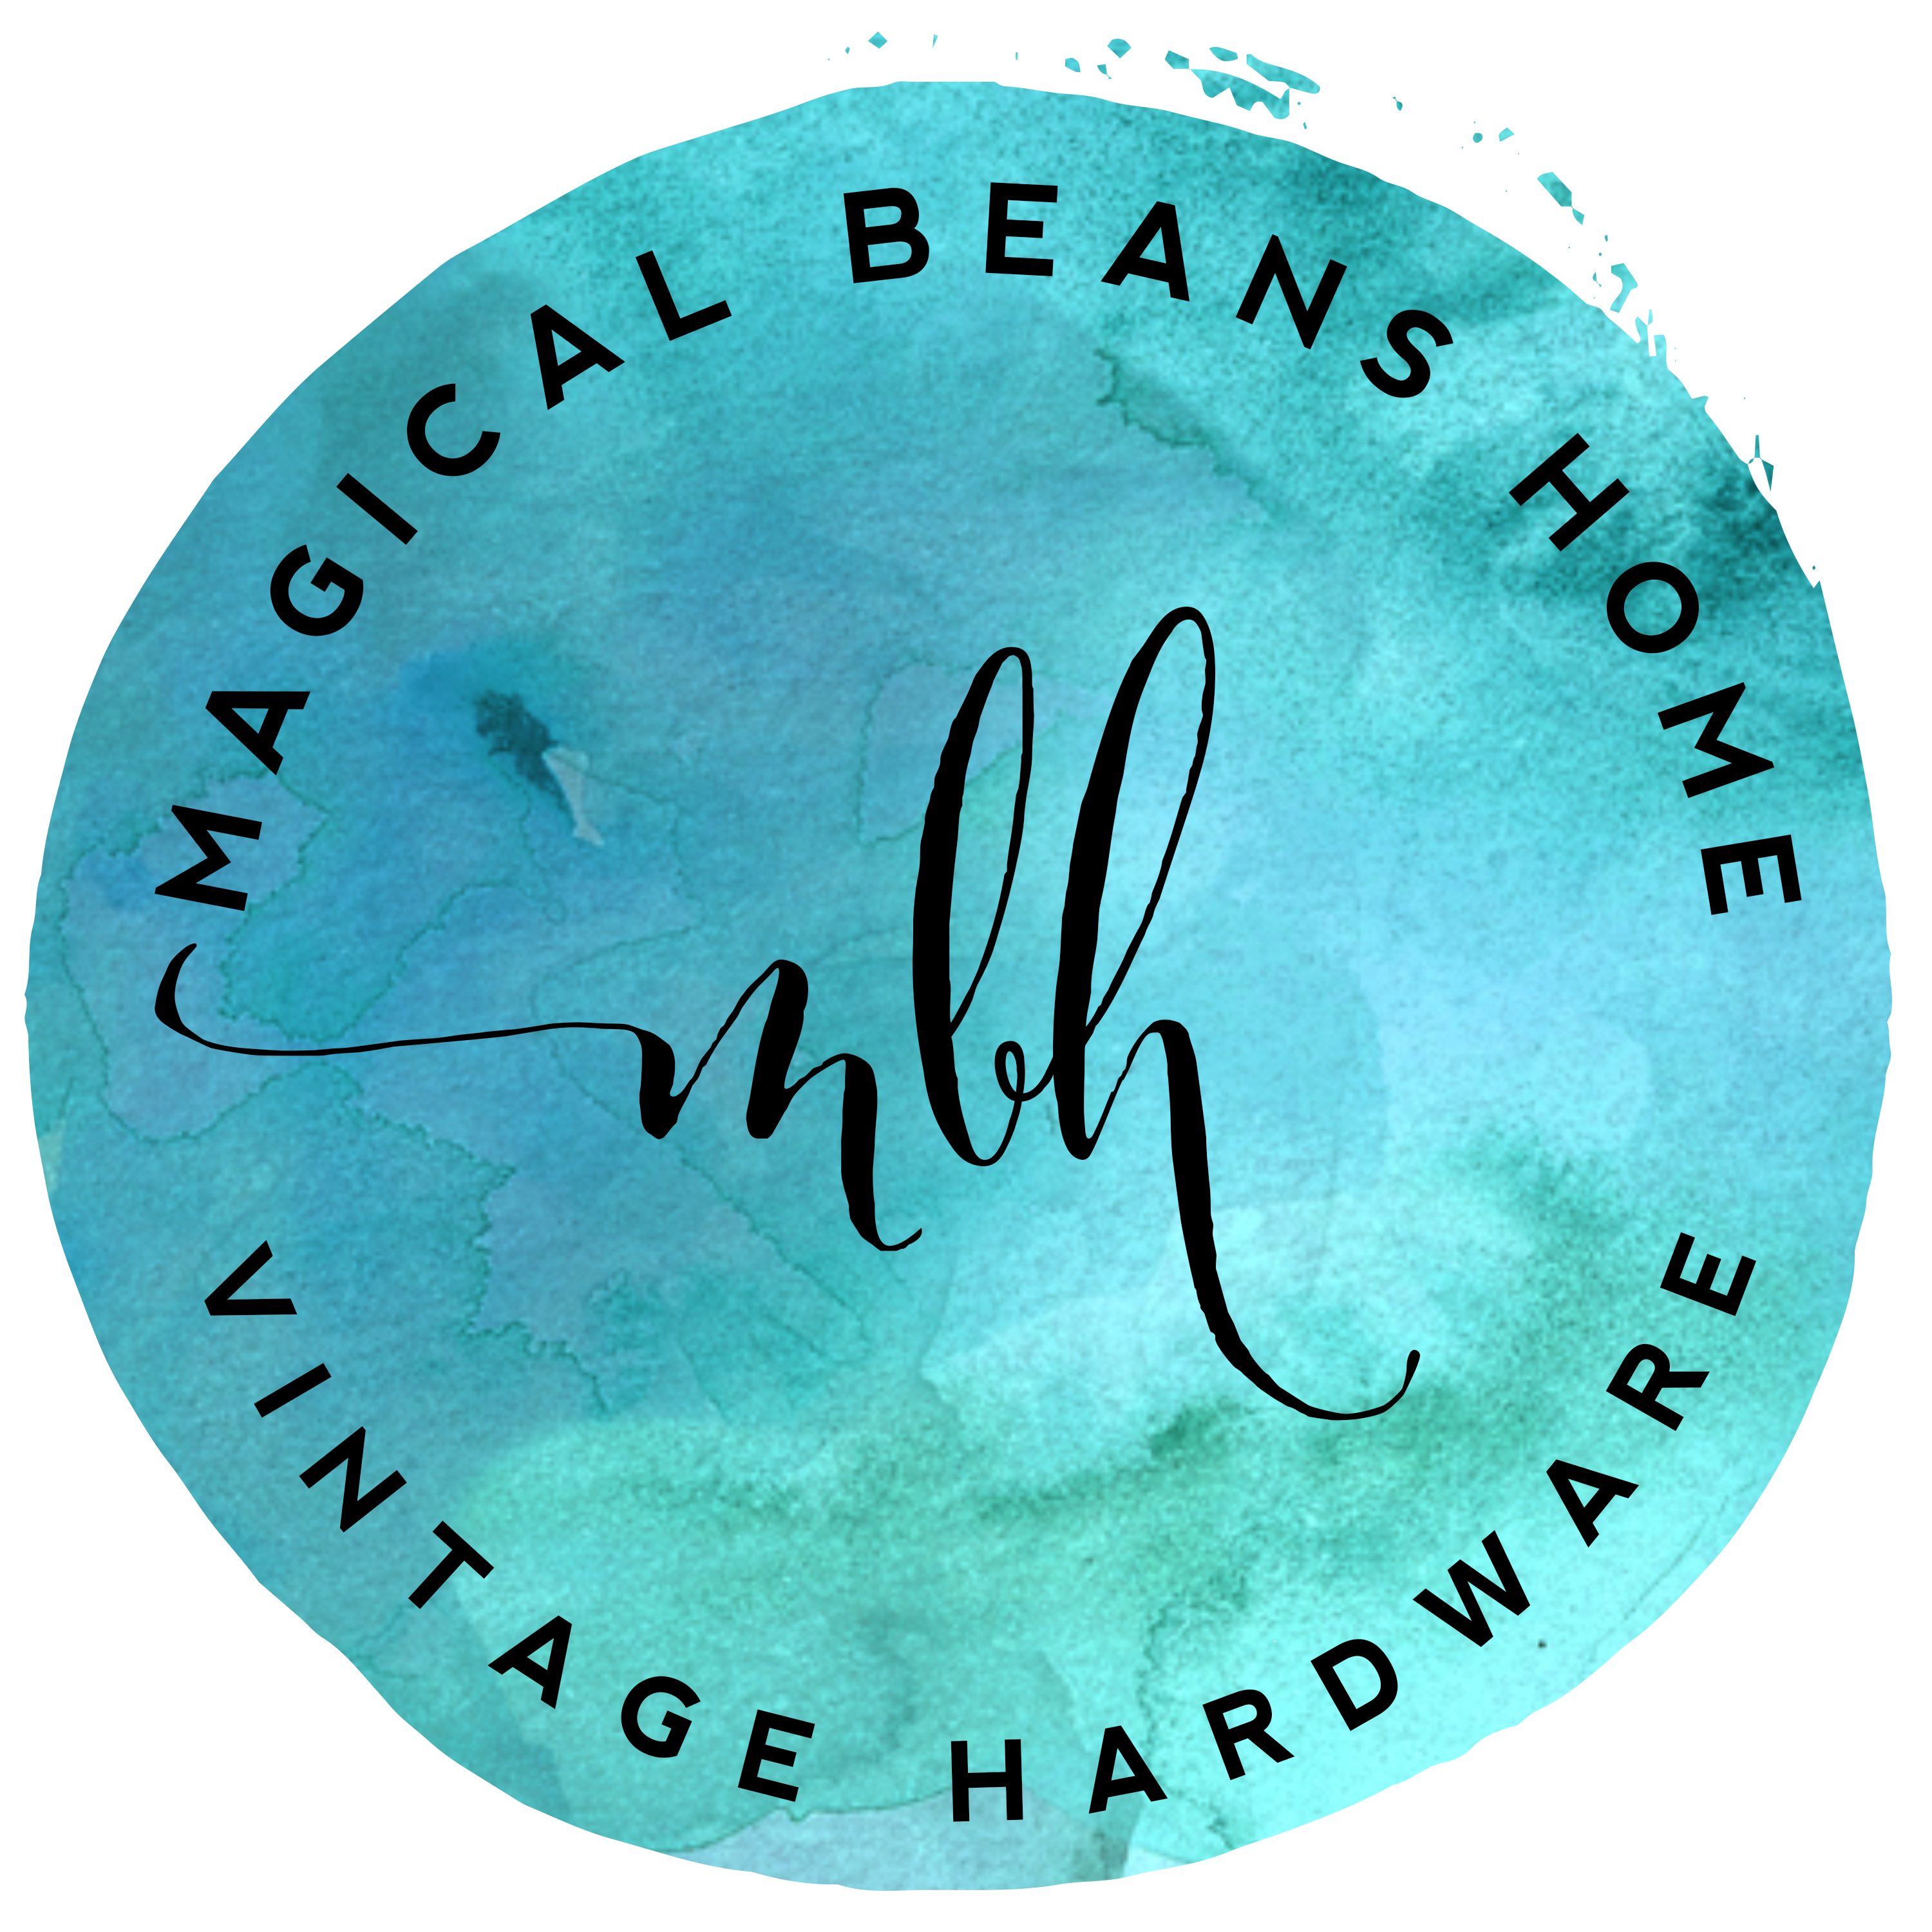 magical beans ome vintage hardware